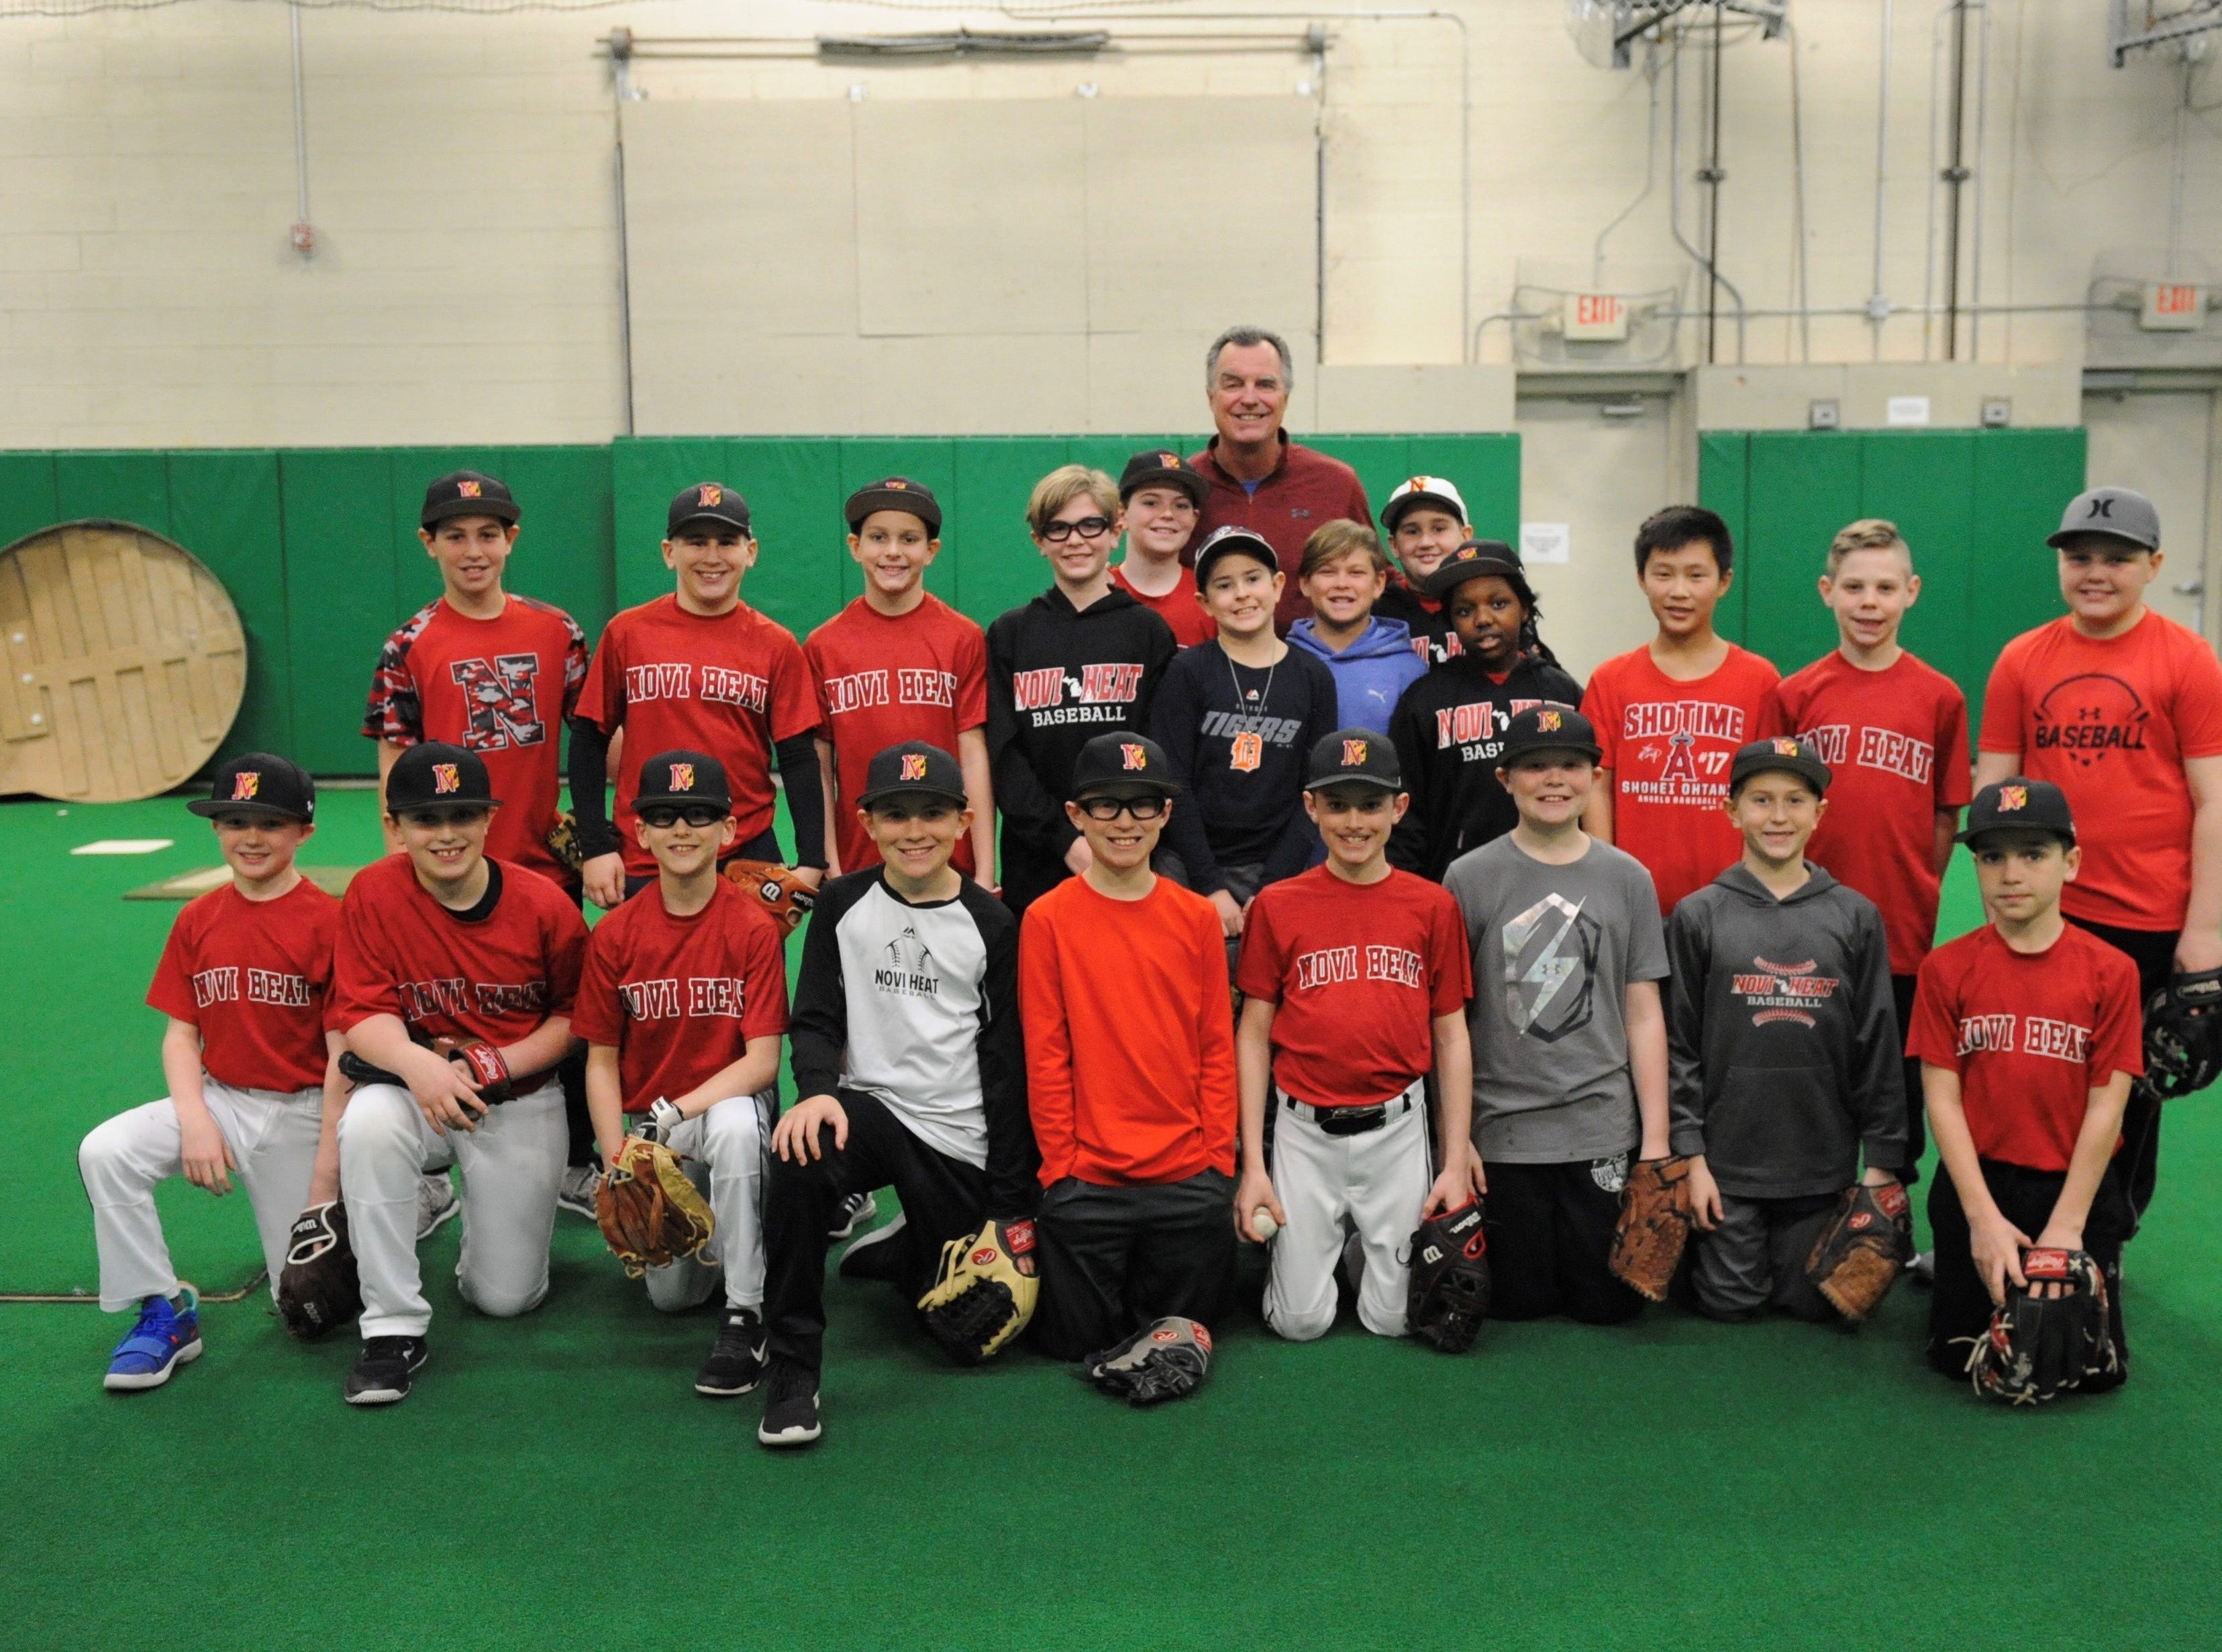 Detroit Tigers retired pitcher Frank Tanana takes a group photo with Novi Heat baseball players Thursday evening.